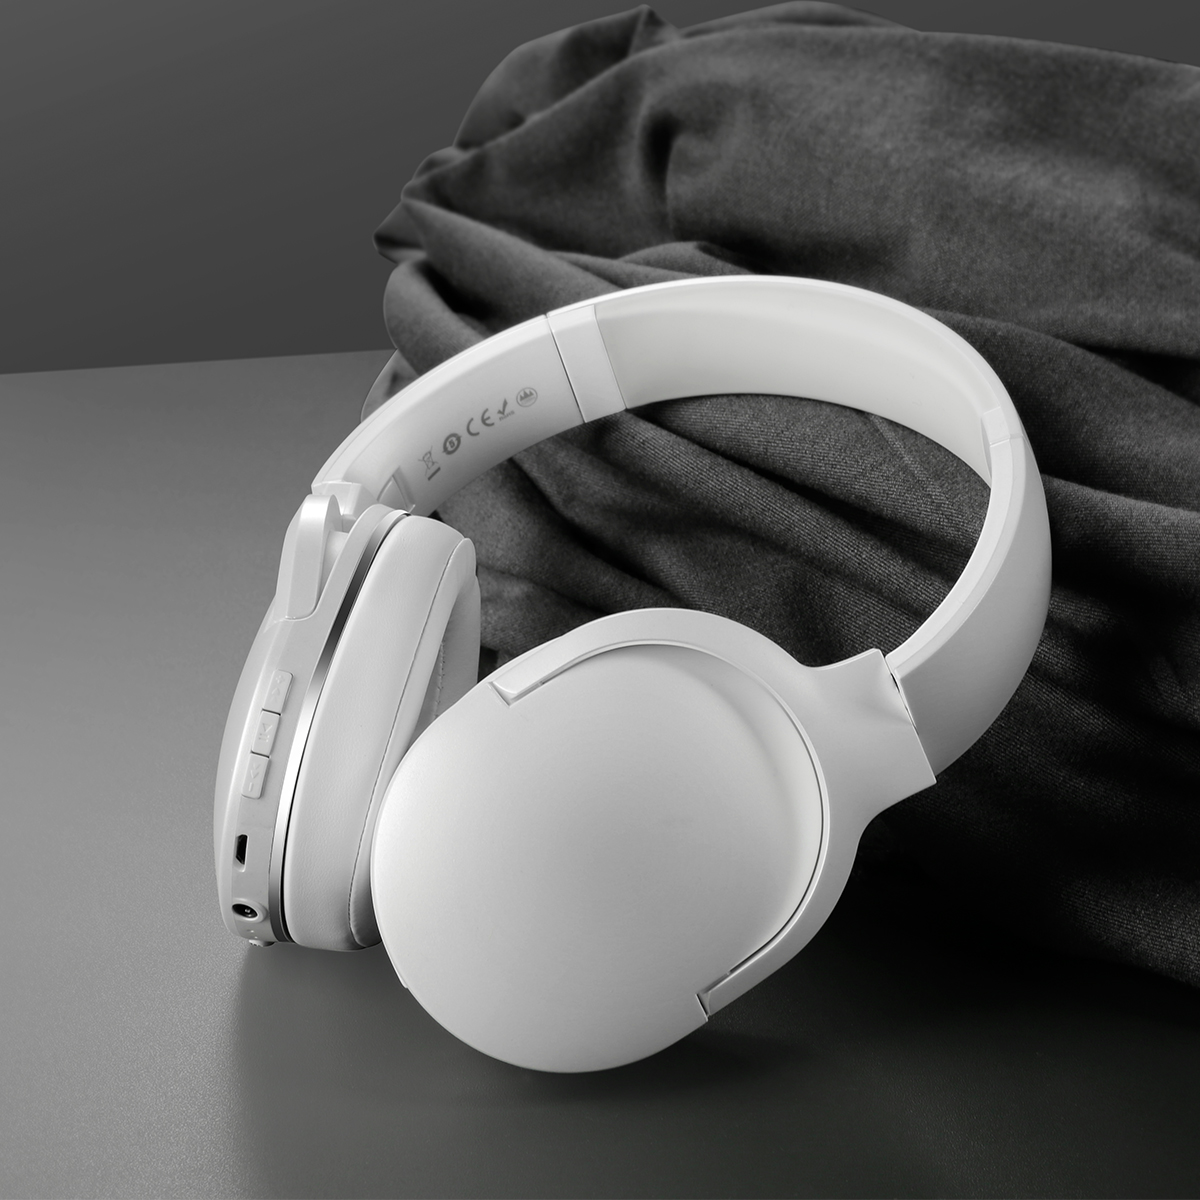 Наушники Baseus Encok Wireless headphone D02 (White)